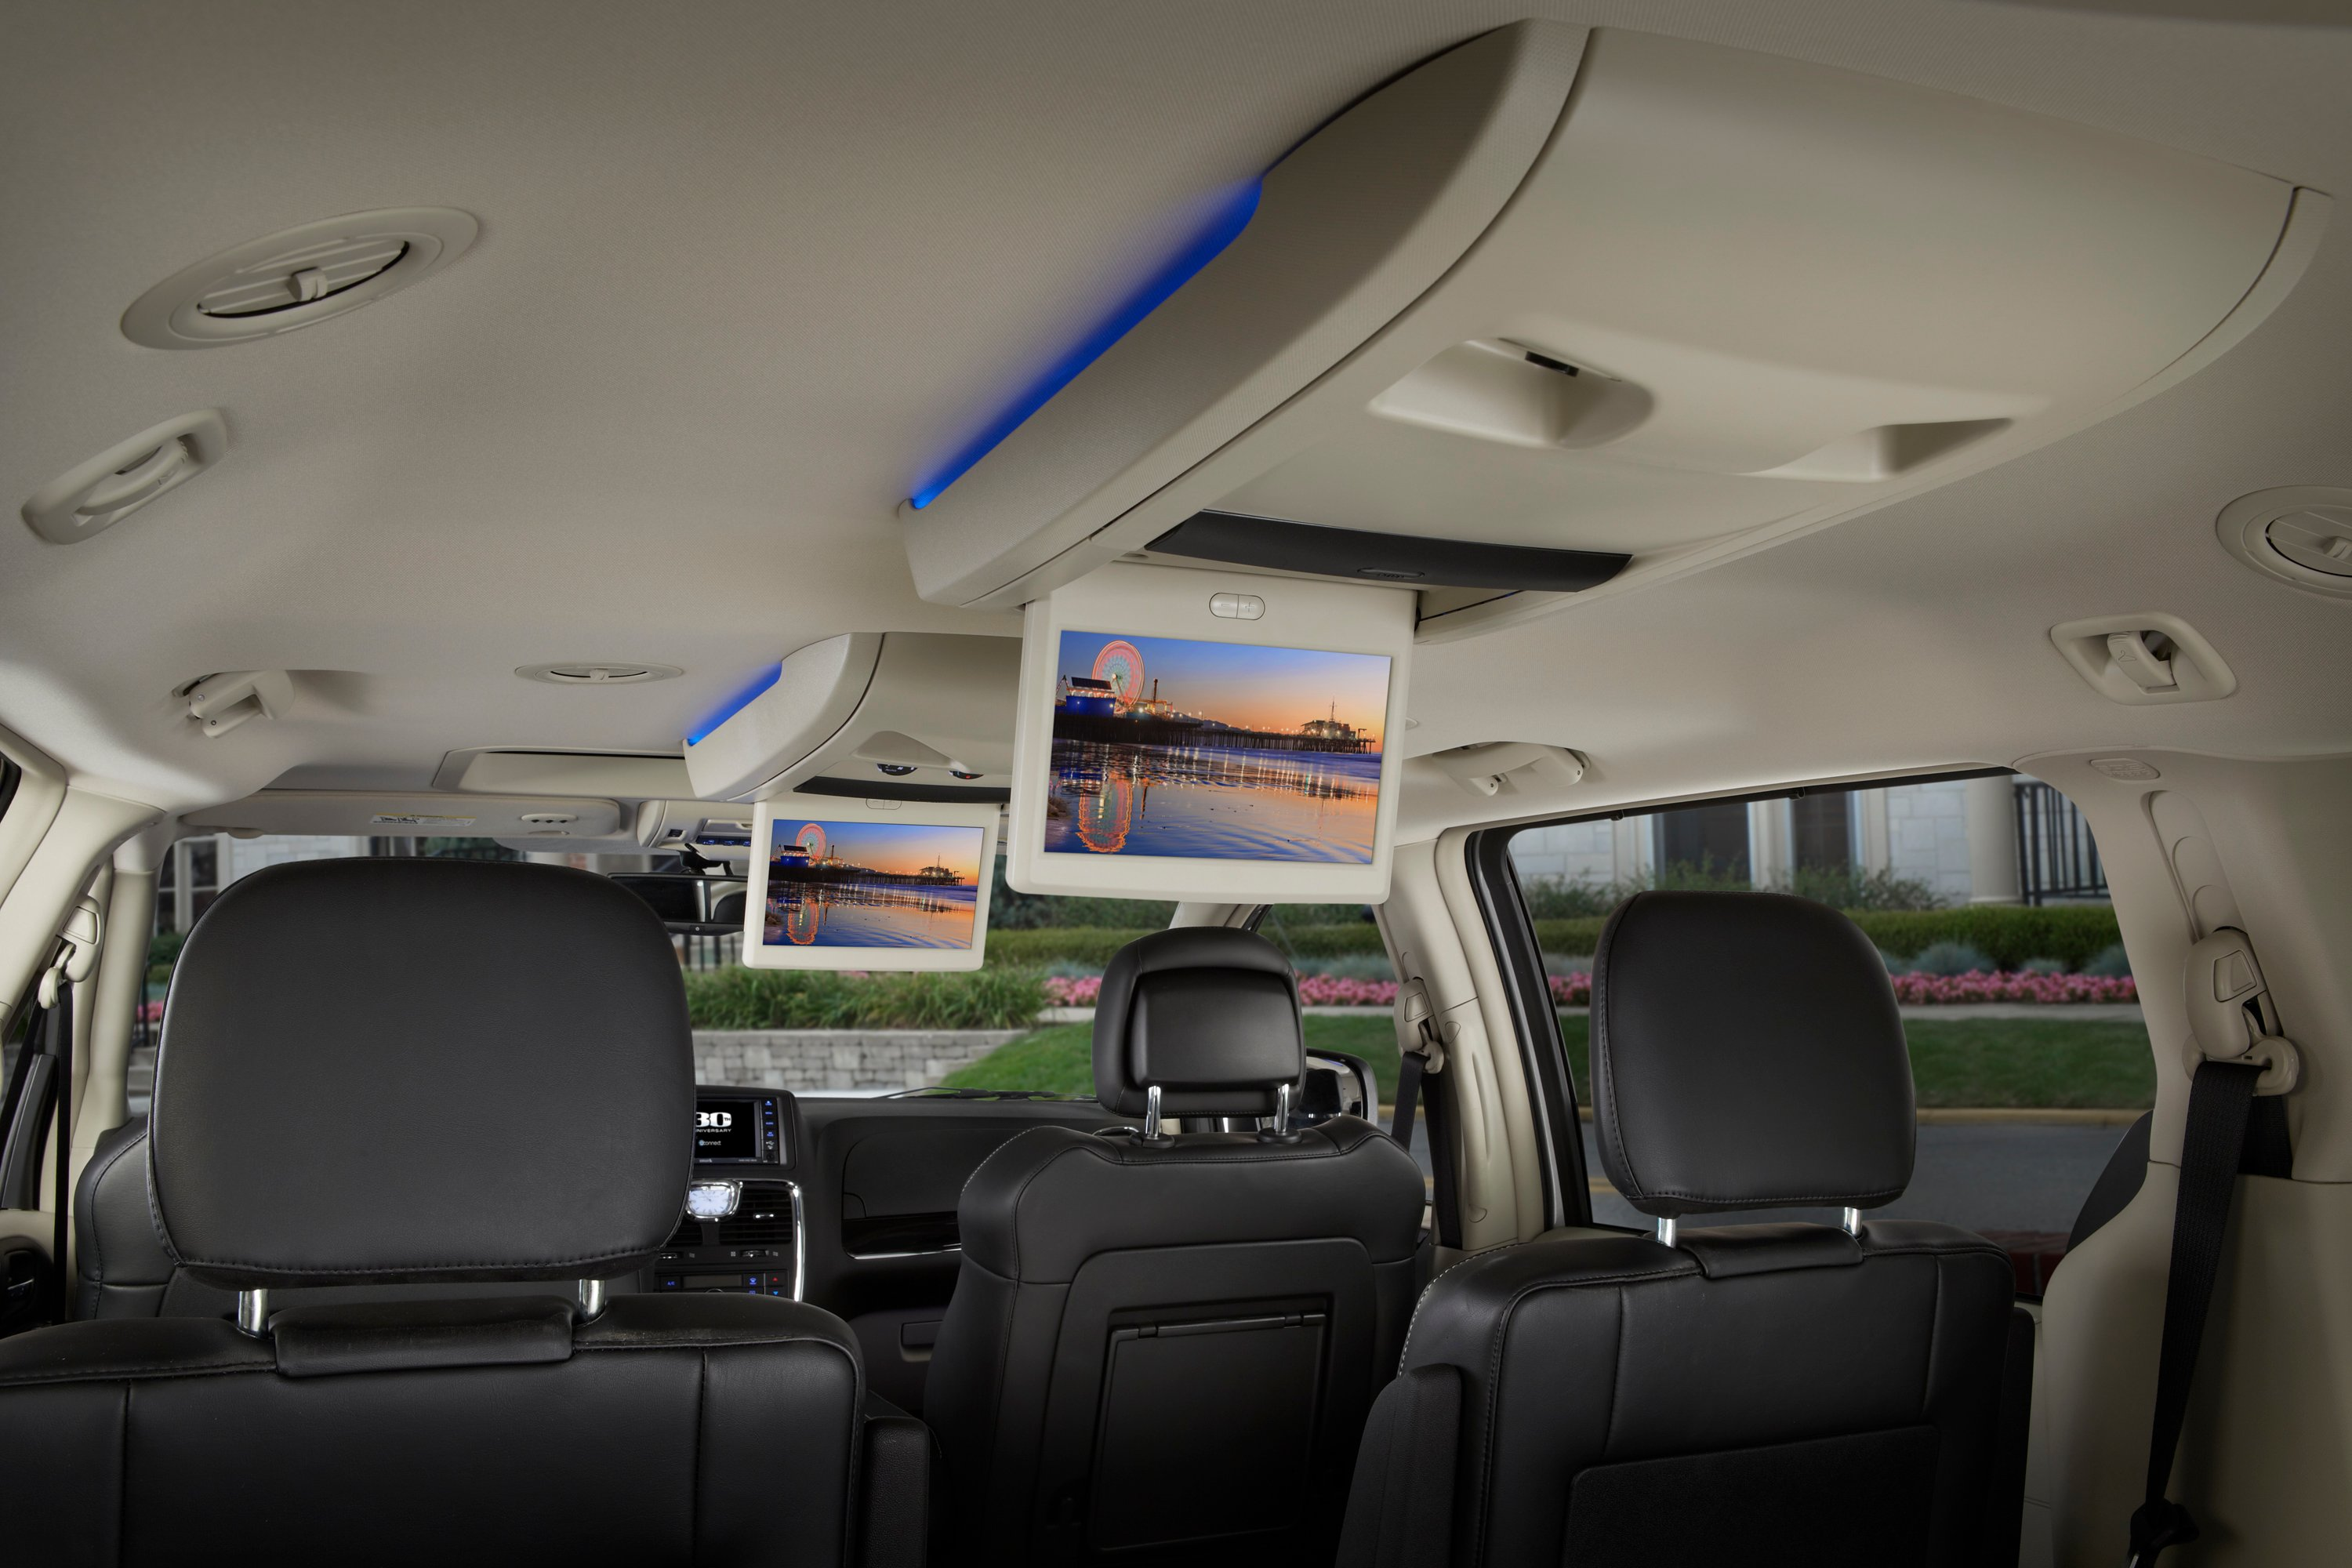 chrysler town & country images #12